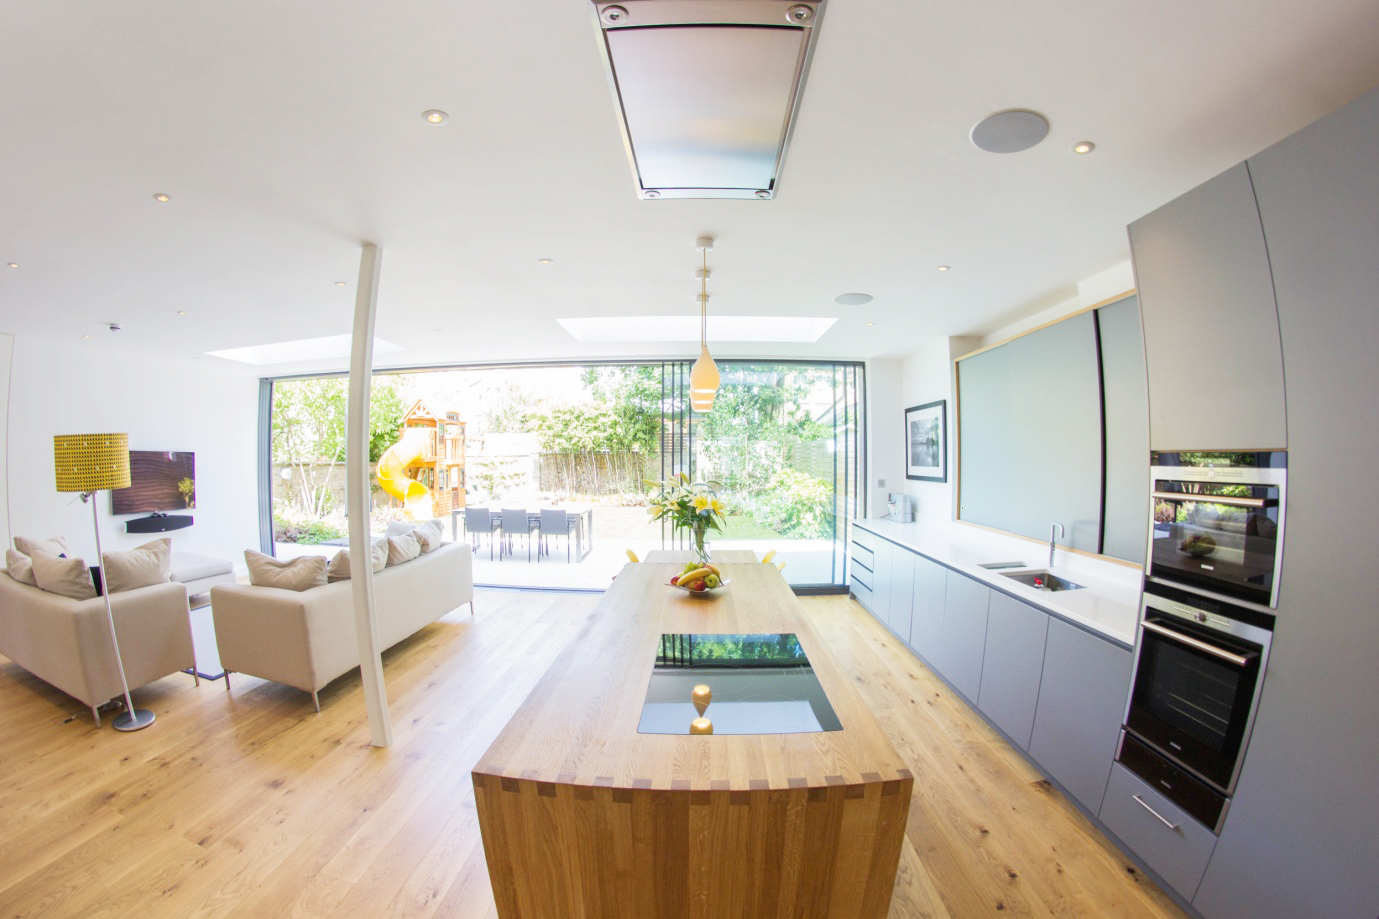 Superior ... Astonishing Bedroom Over Garage Extension House Extension